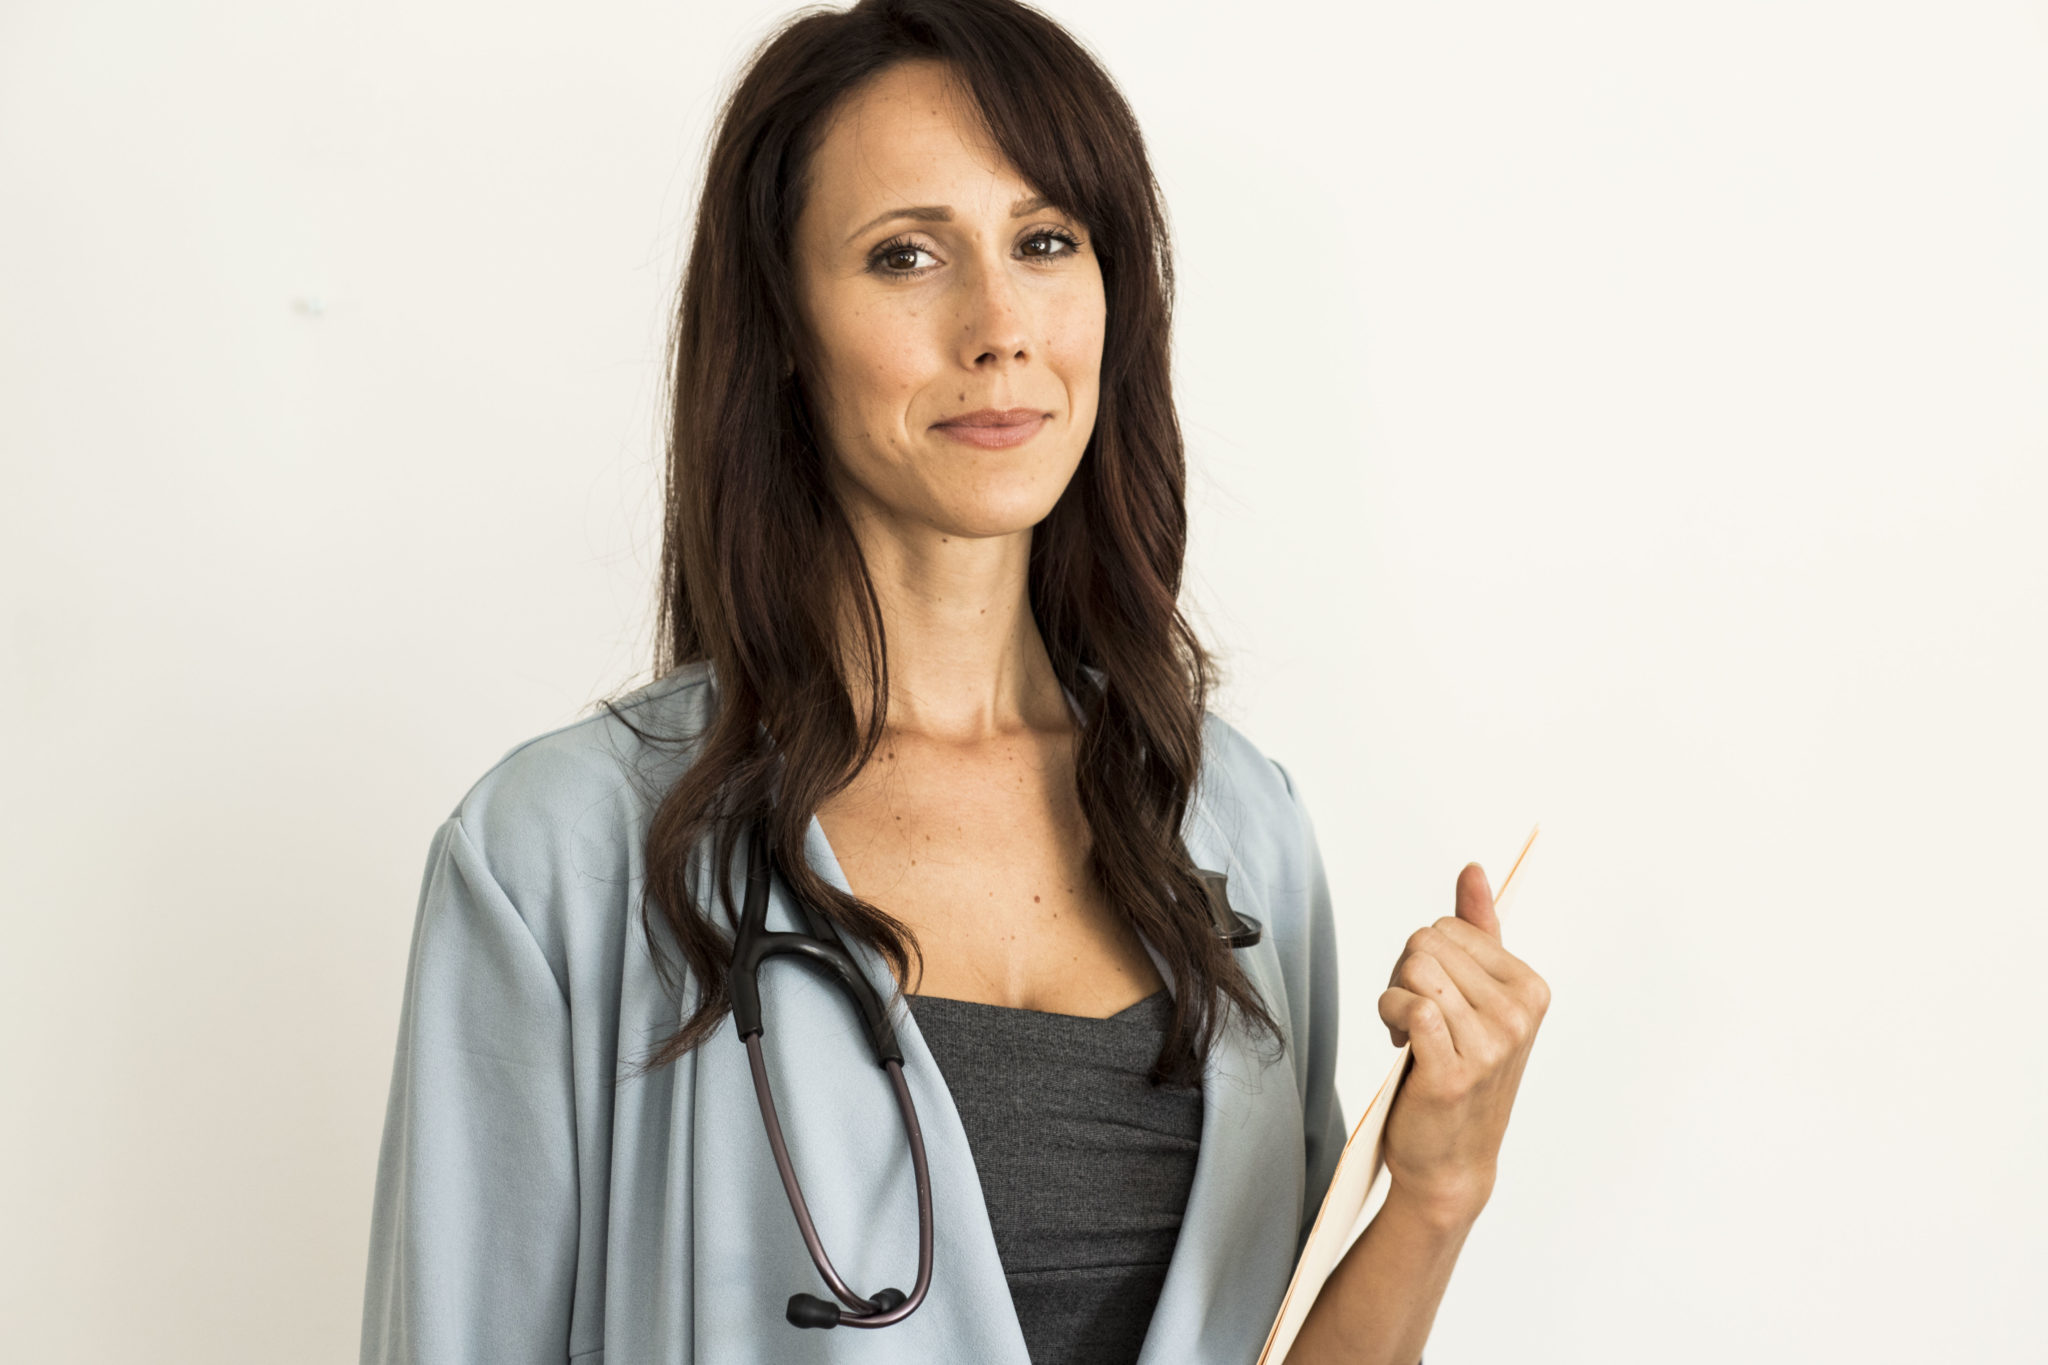 Doctor Alyssa Hart, the main character of I Hear You